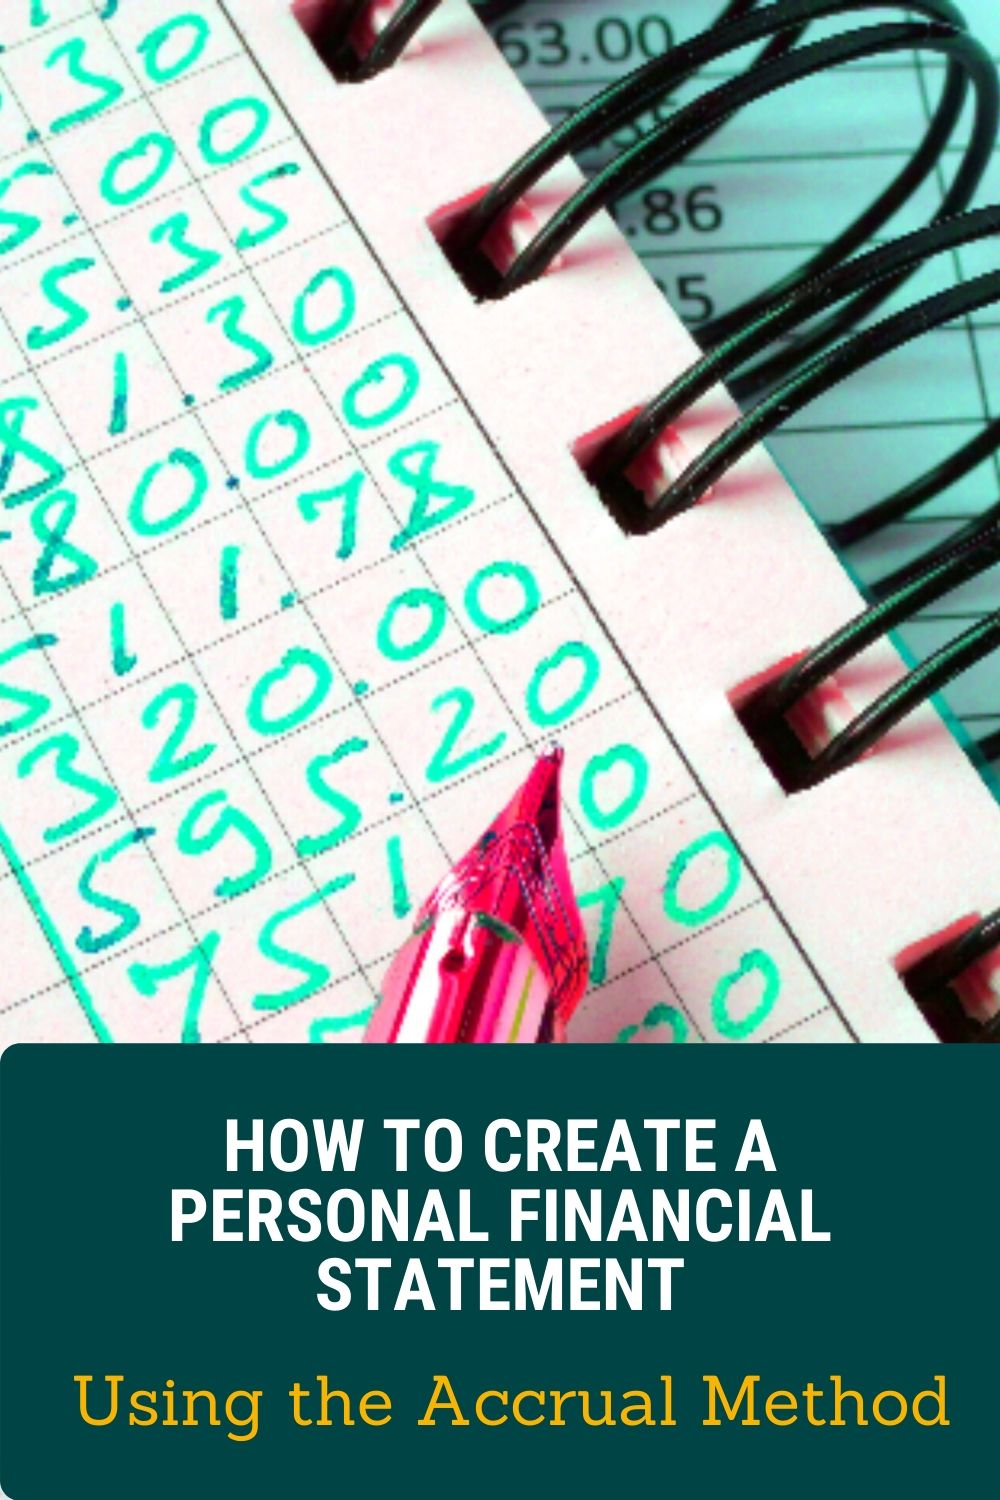 How to Create a Personal Financial Statement Using the Accrual Method